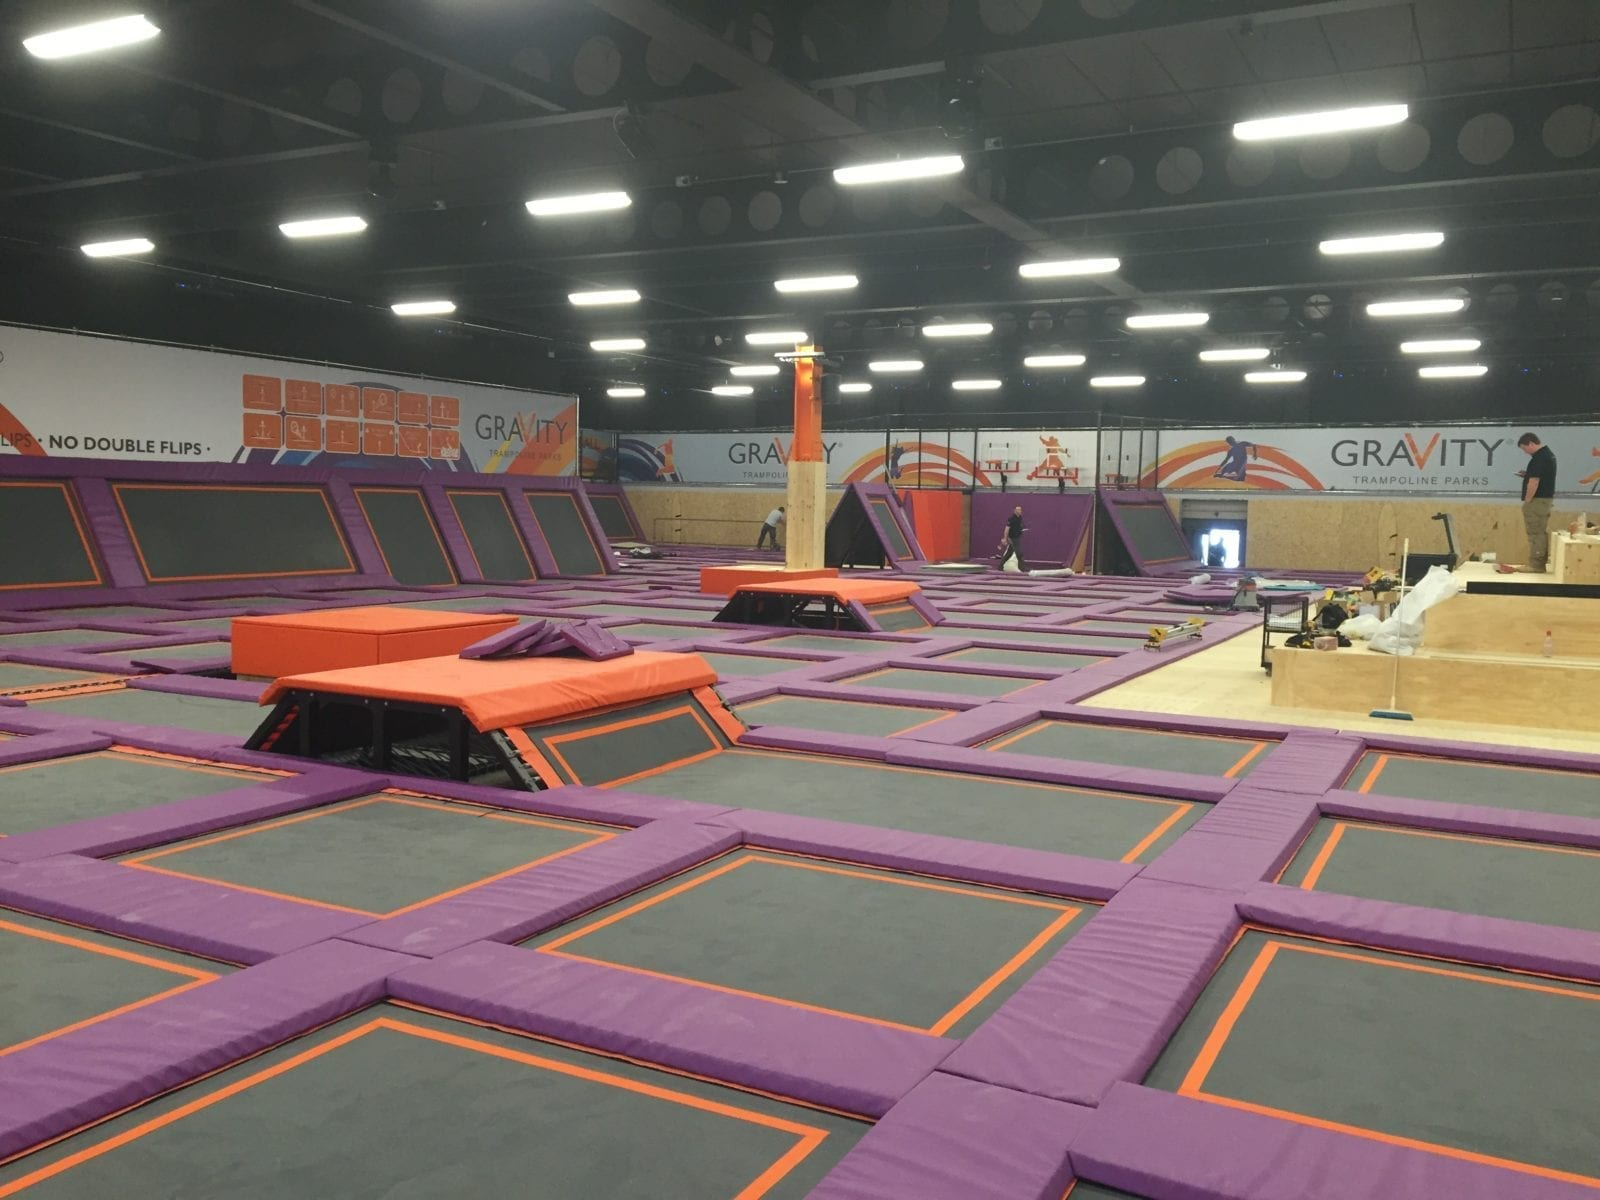 Epoxy Floor Coating Commercial Decorations Trampoline Park